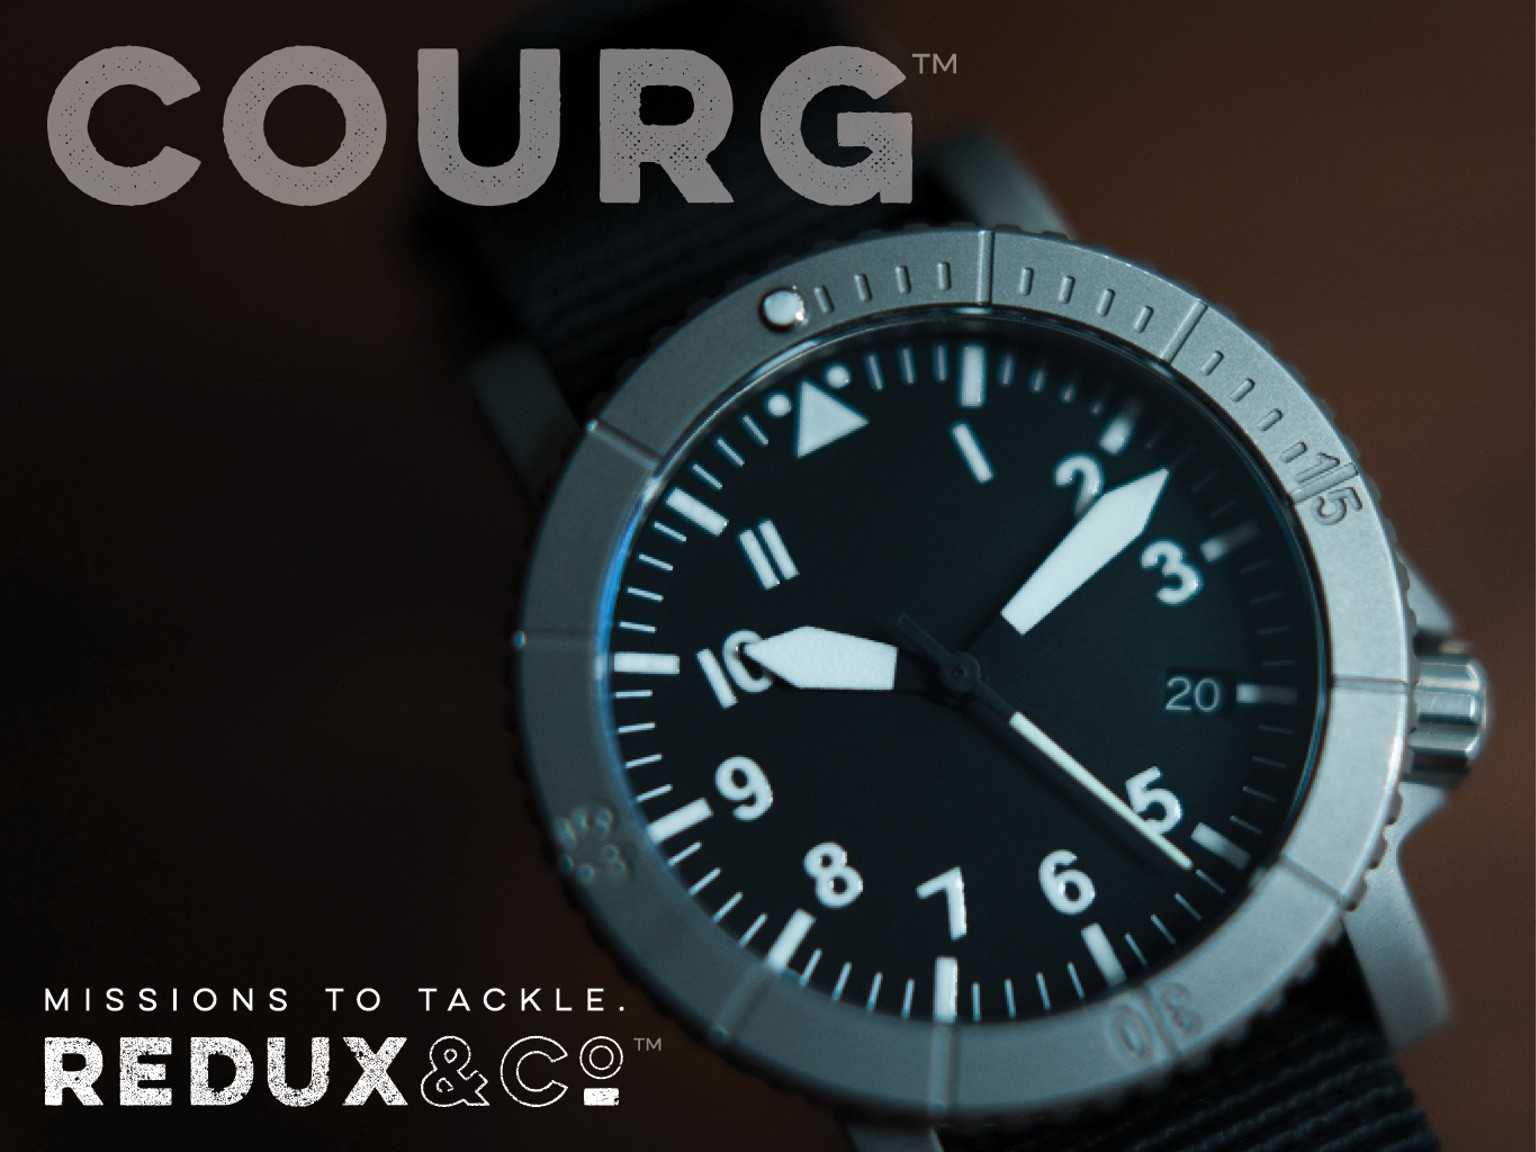 A Courageous Pilot Watch Design – Courg by Redux & Co.